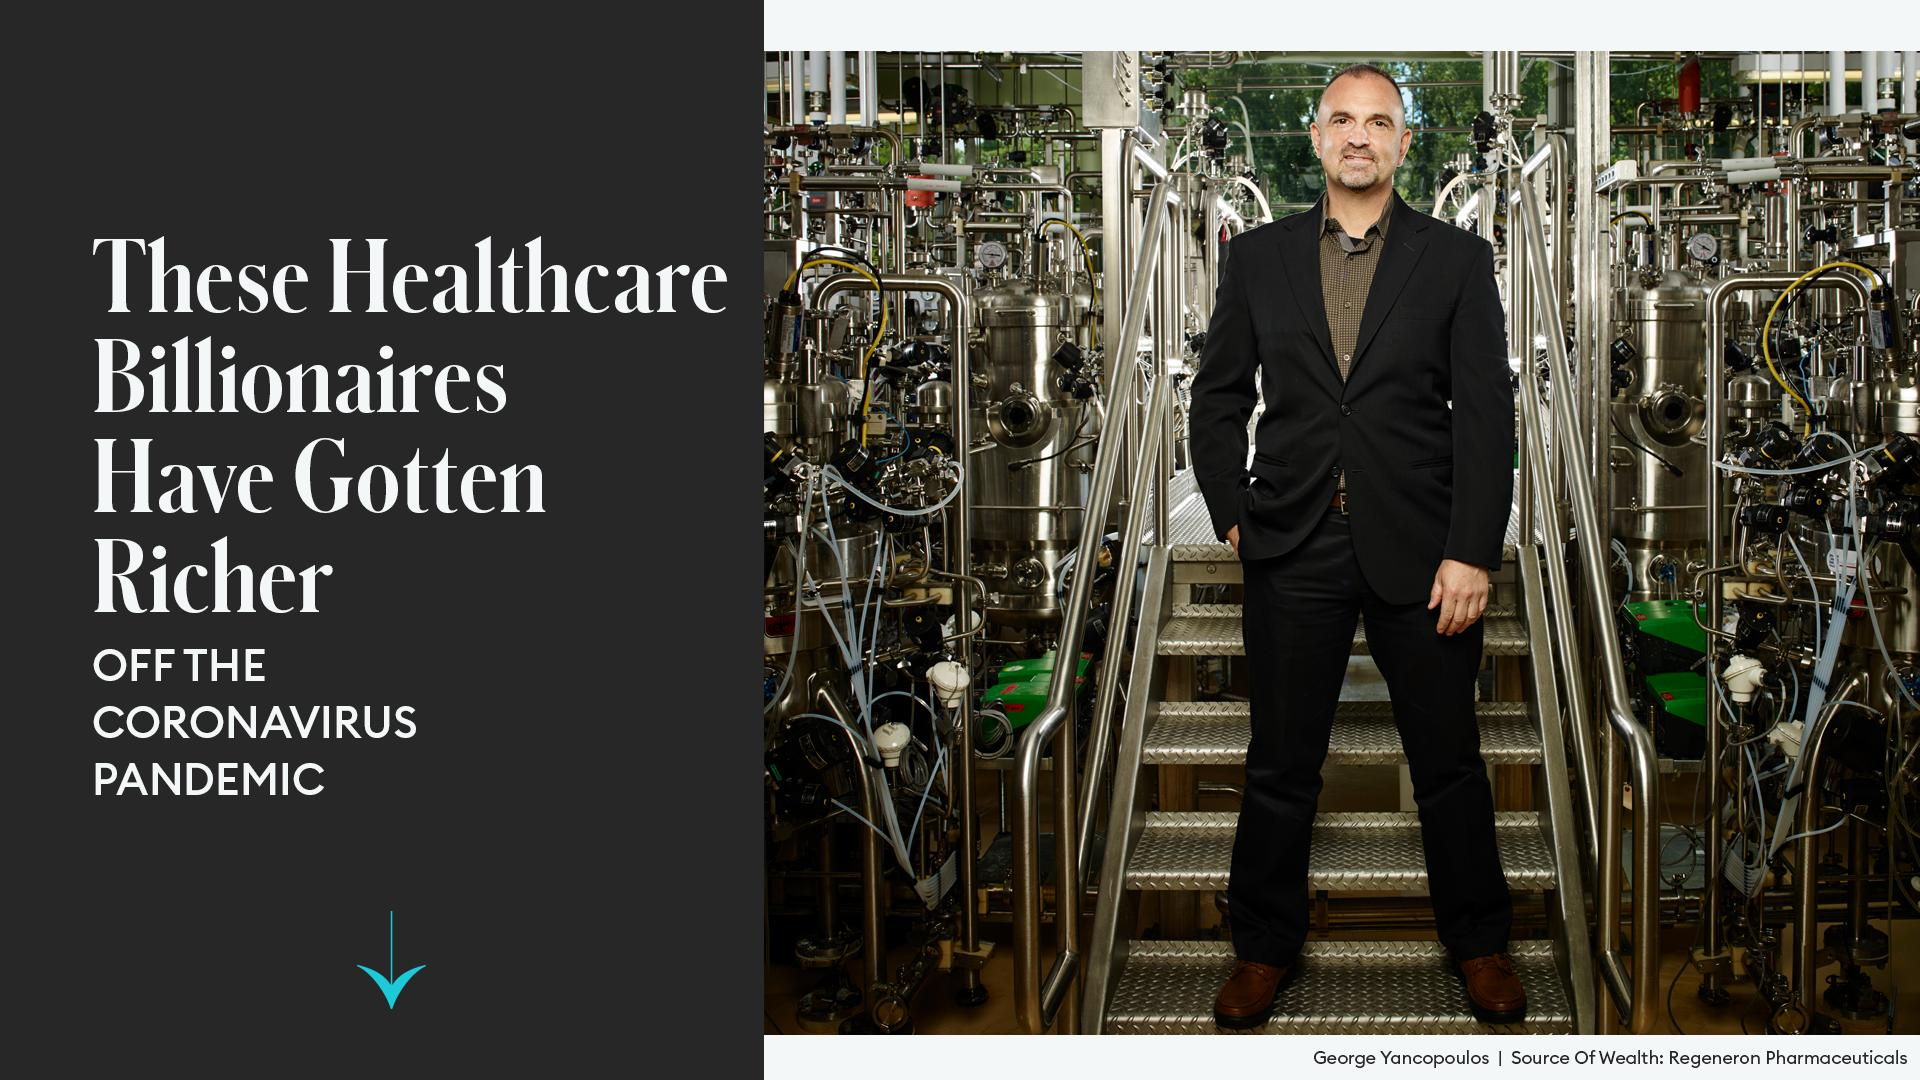 THESE HEALTHCARE BILLIONAIRES HAVE GOTTEN RICHER OFF THE CORONAVIRUS PANDEMIC. ONE OF THEM IS GREEK!